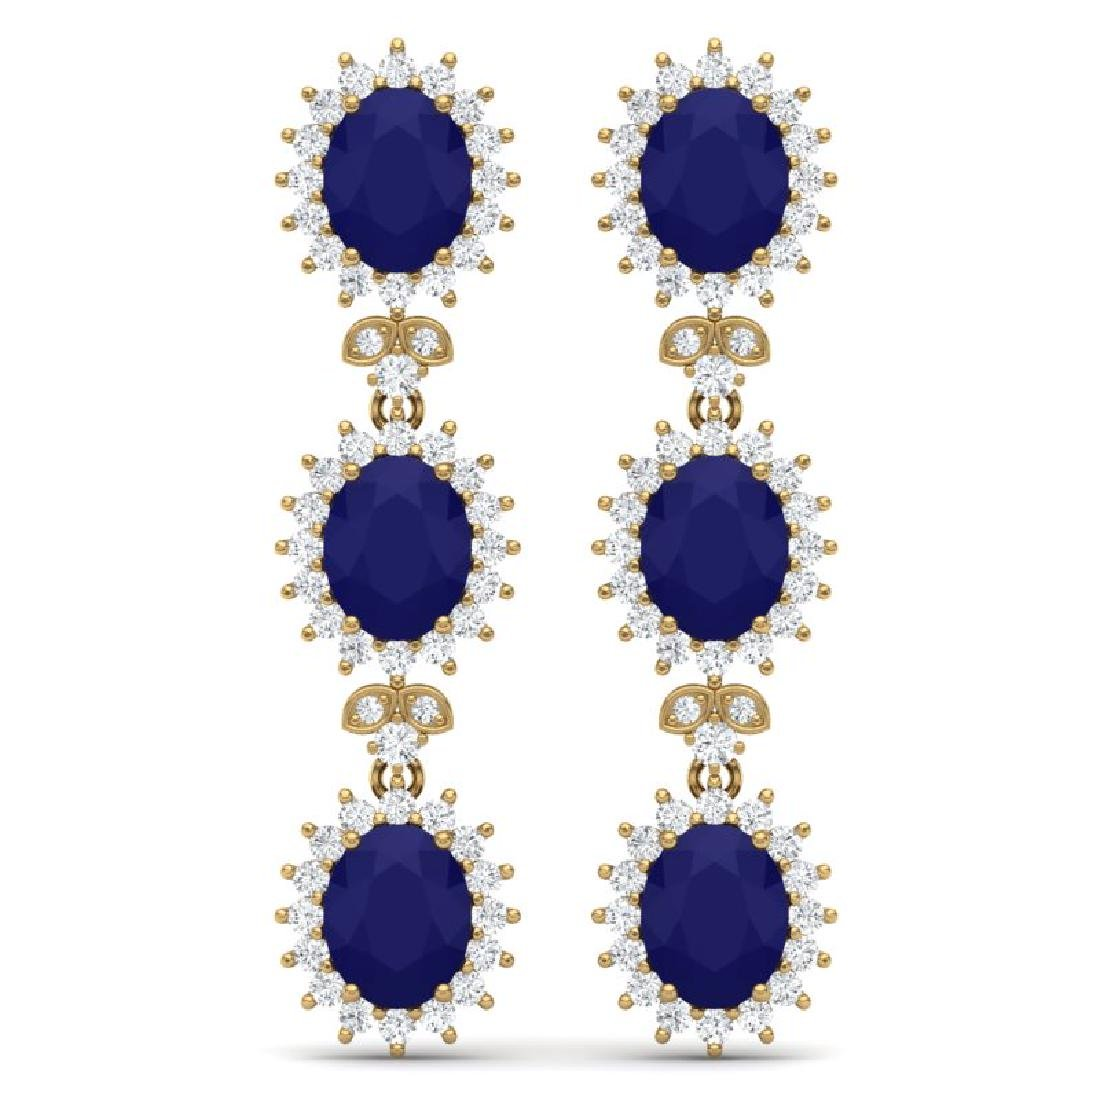 24.52 CTW Royalty Sapphire & VS Diamond Earrings 18K